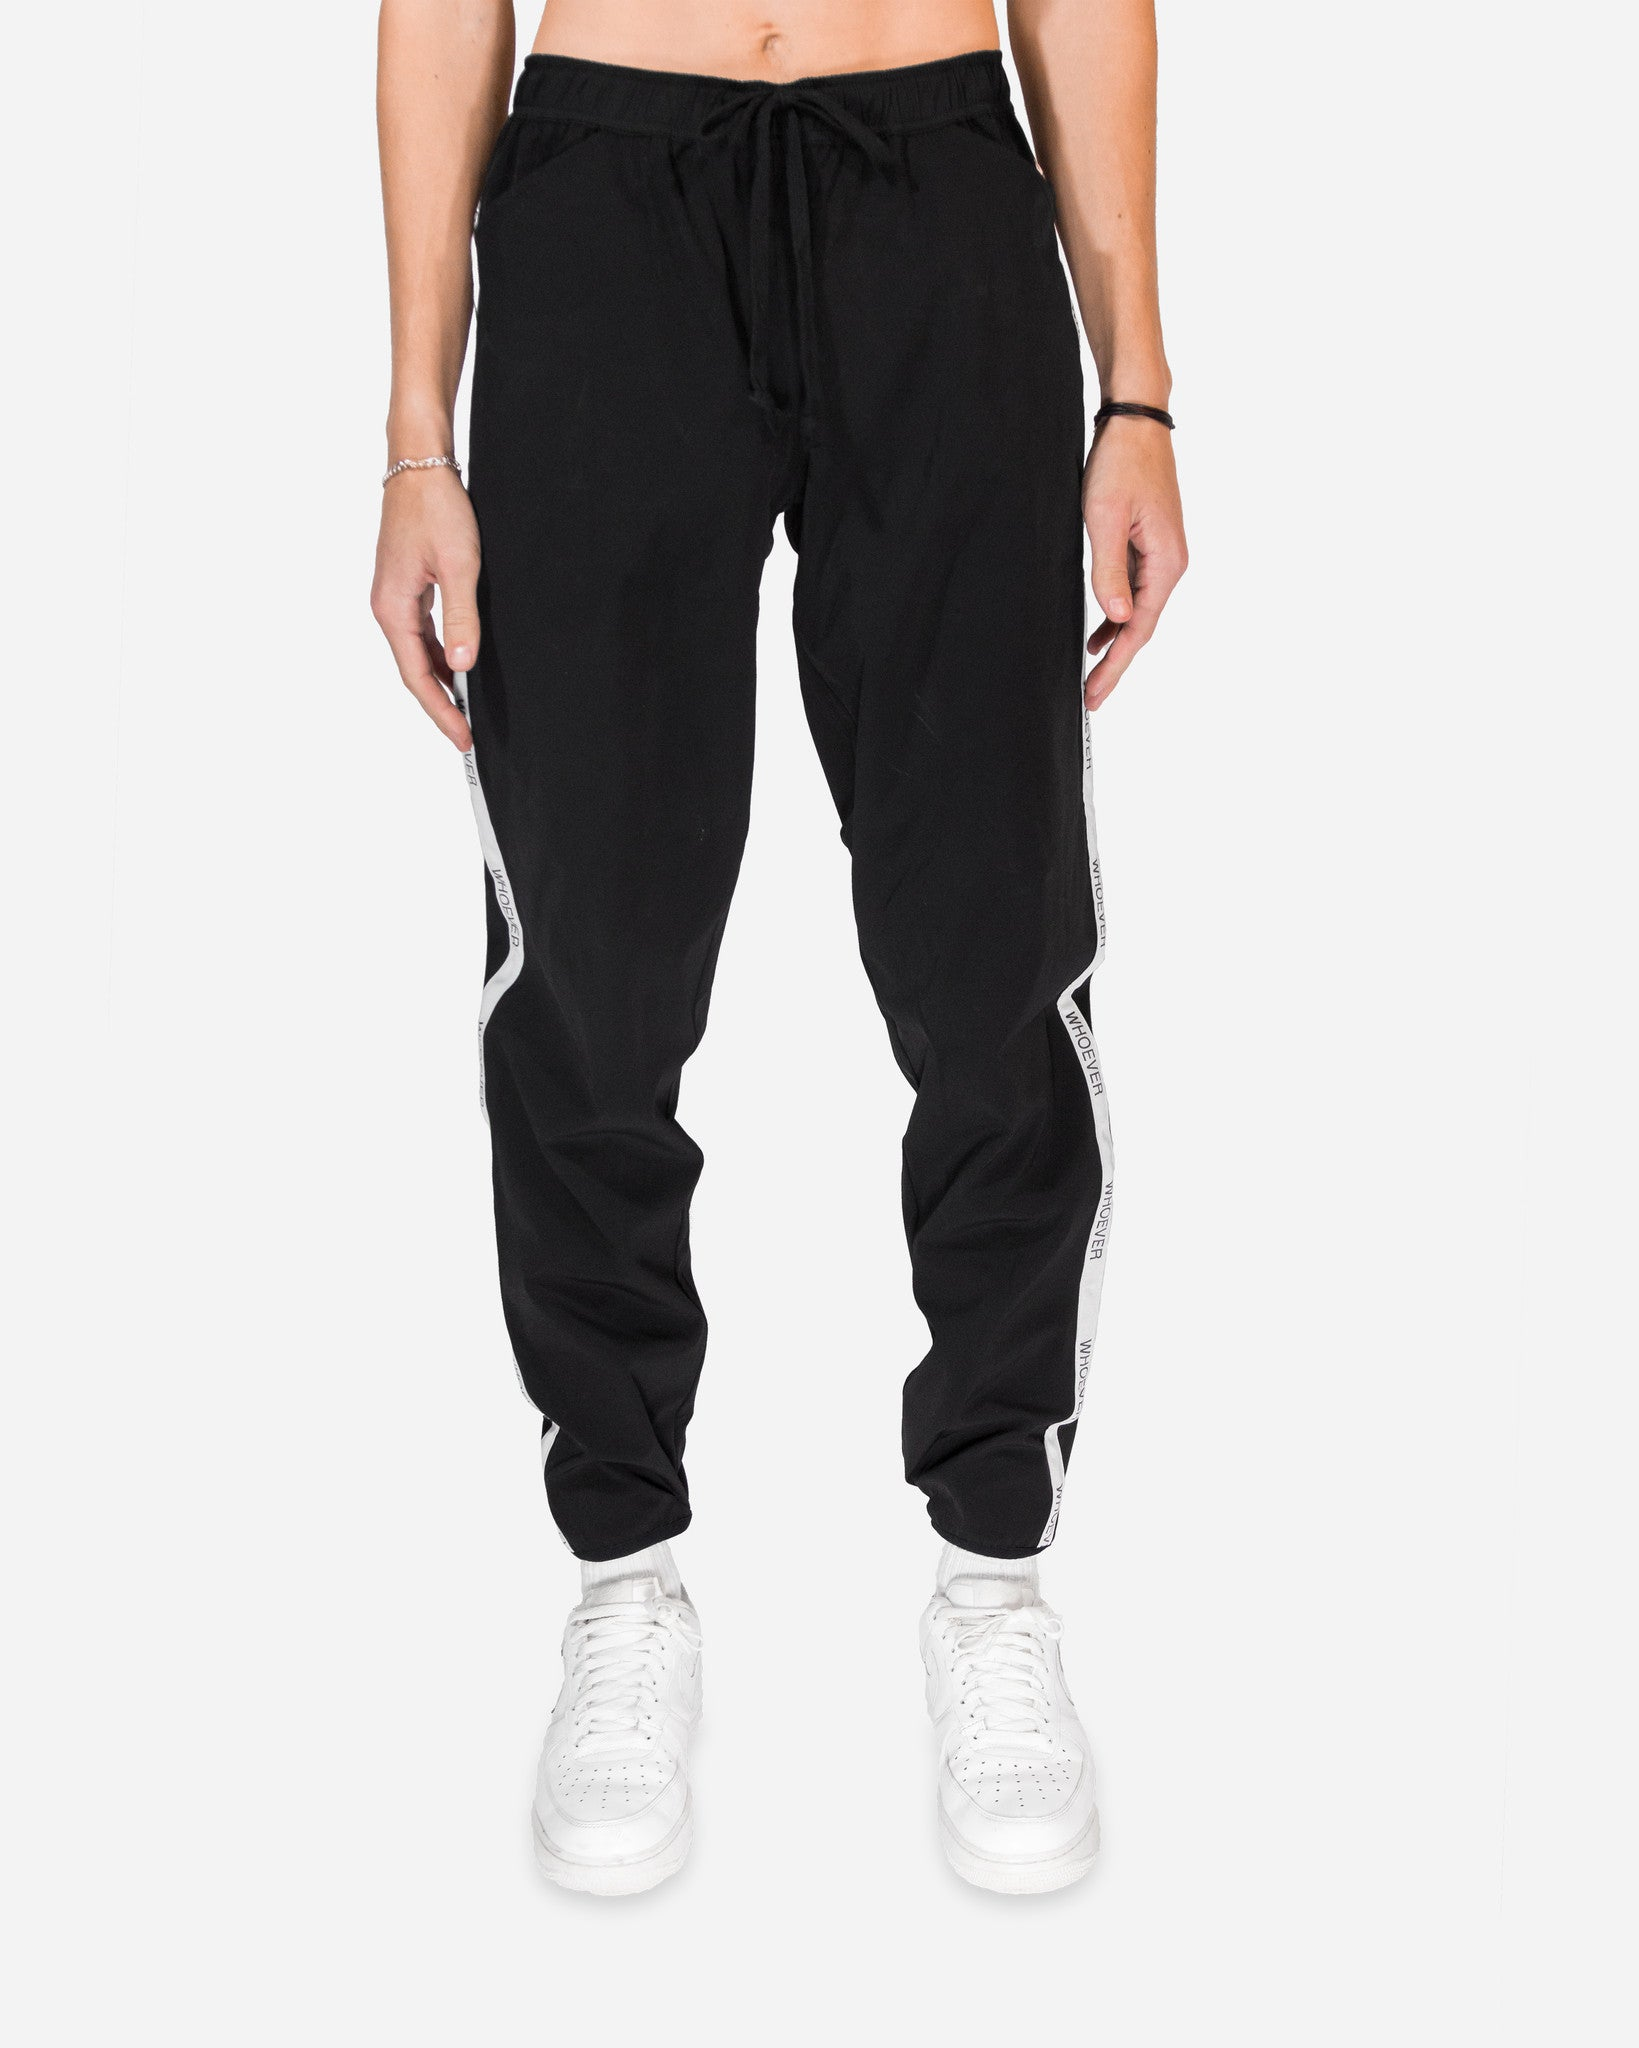 STRIPED LOGO PANT